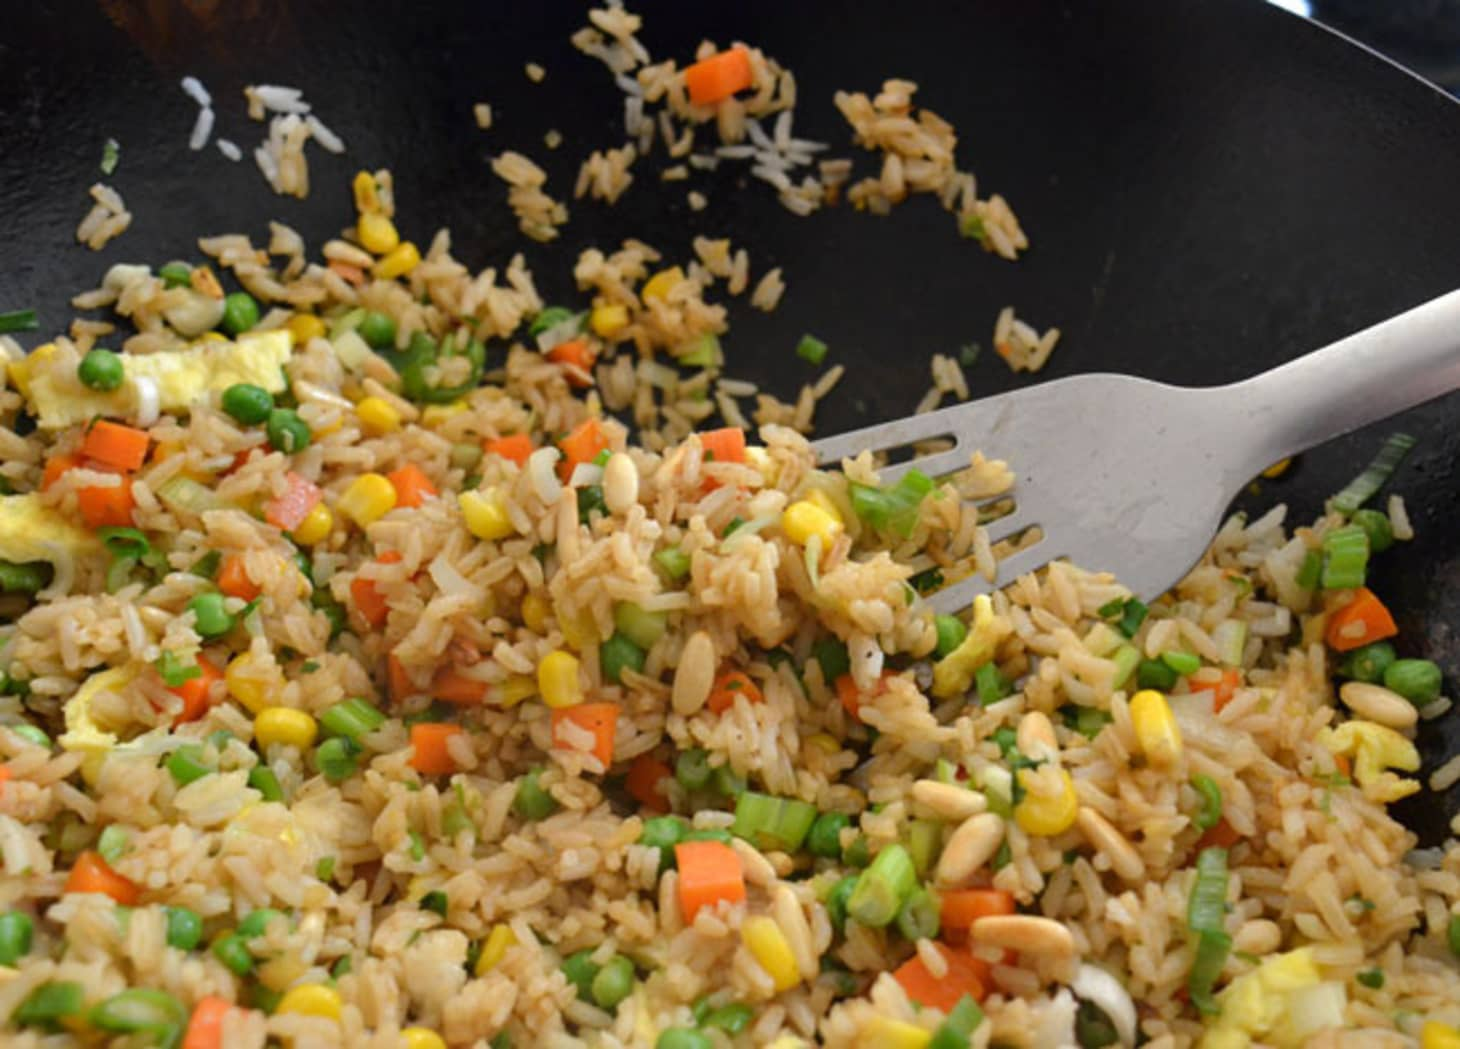 How To Make Fried Rice | Kitchn